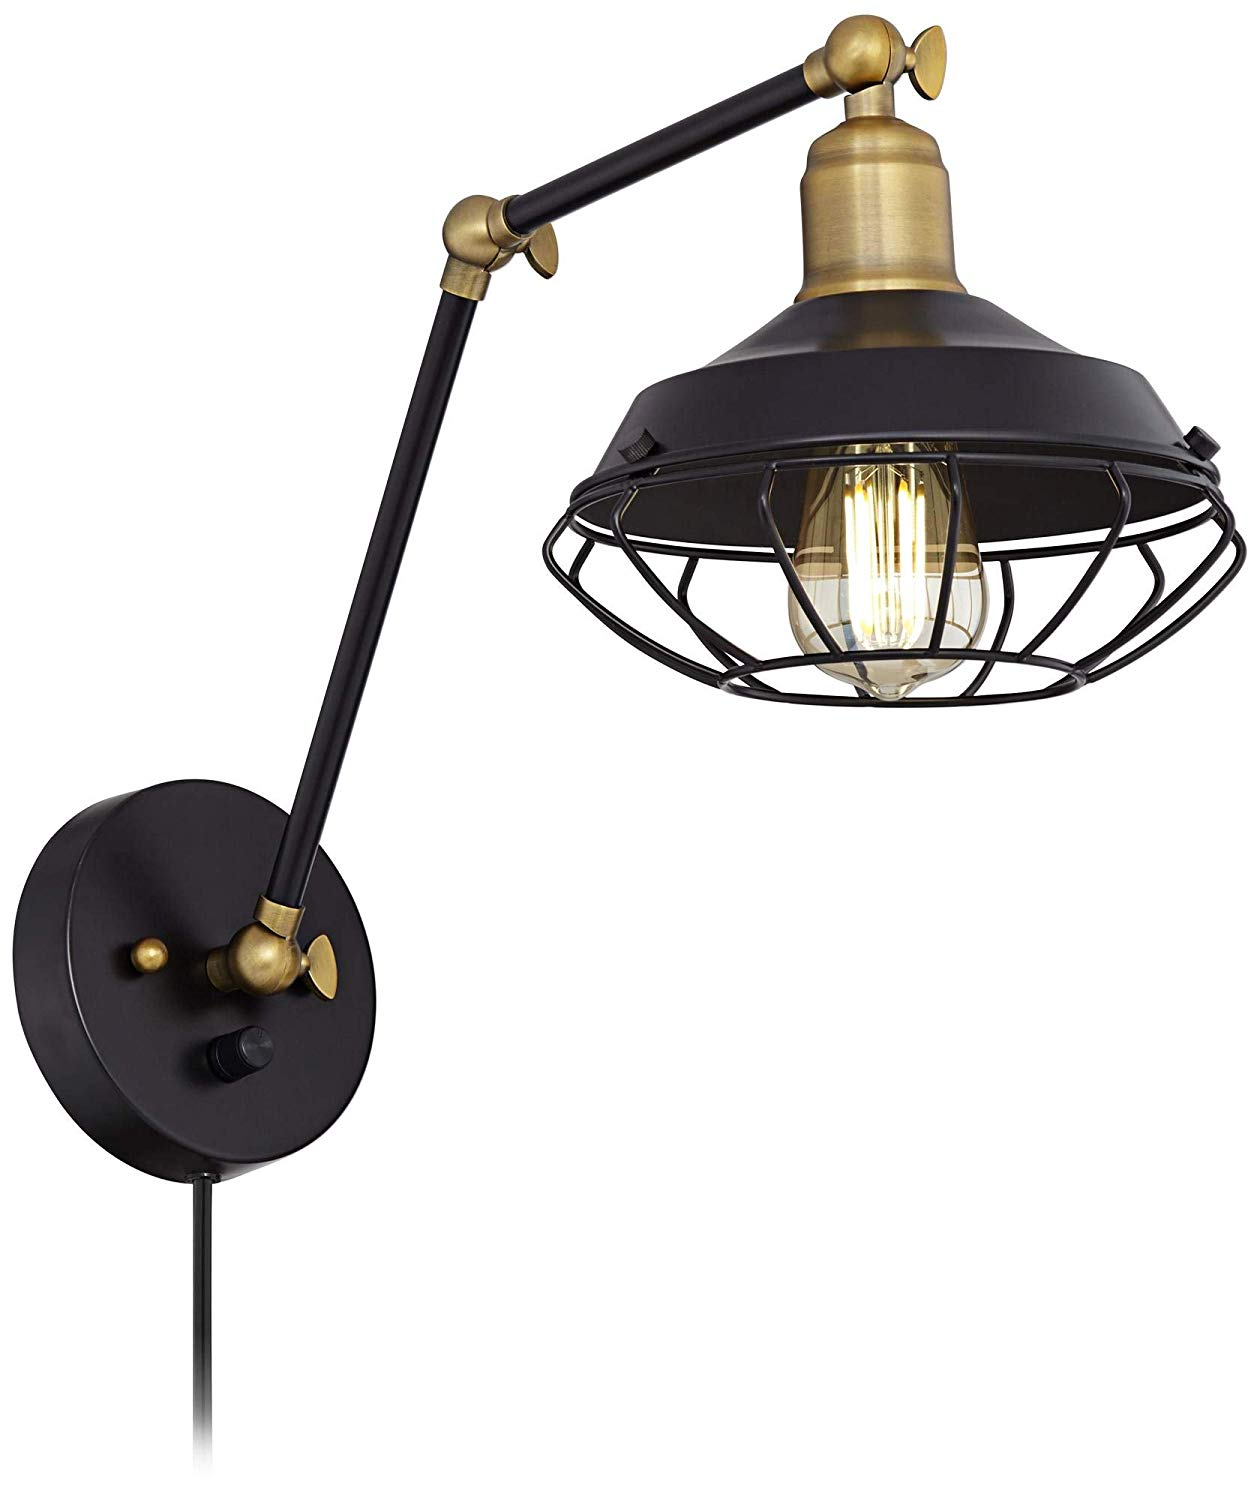 Matte Black and Gold Industrial Cage Wall Lamp